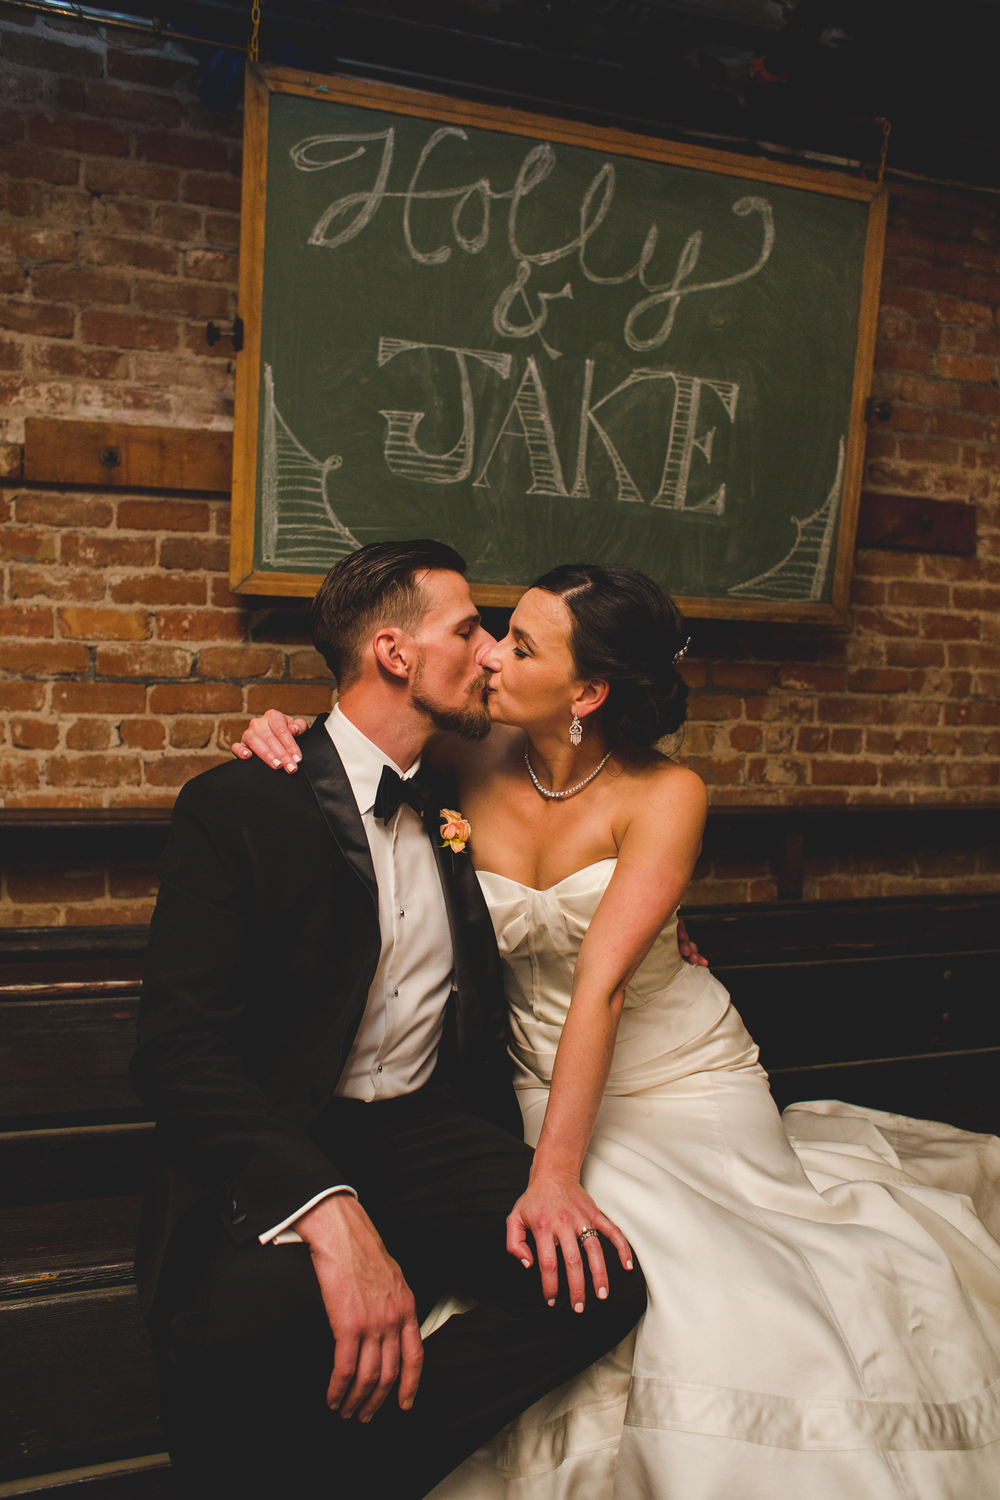 bride and groom under chalkboard sign the duce hj